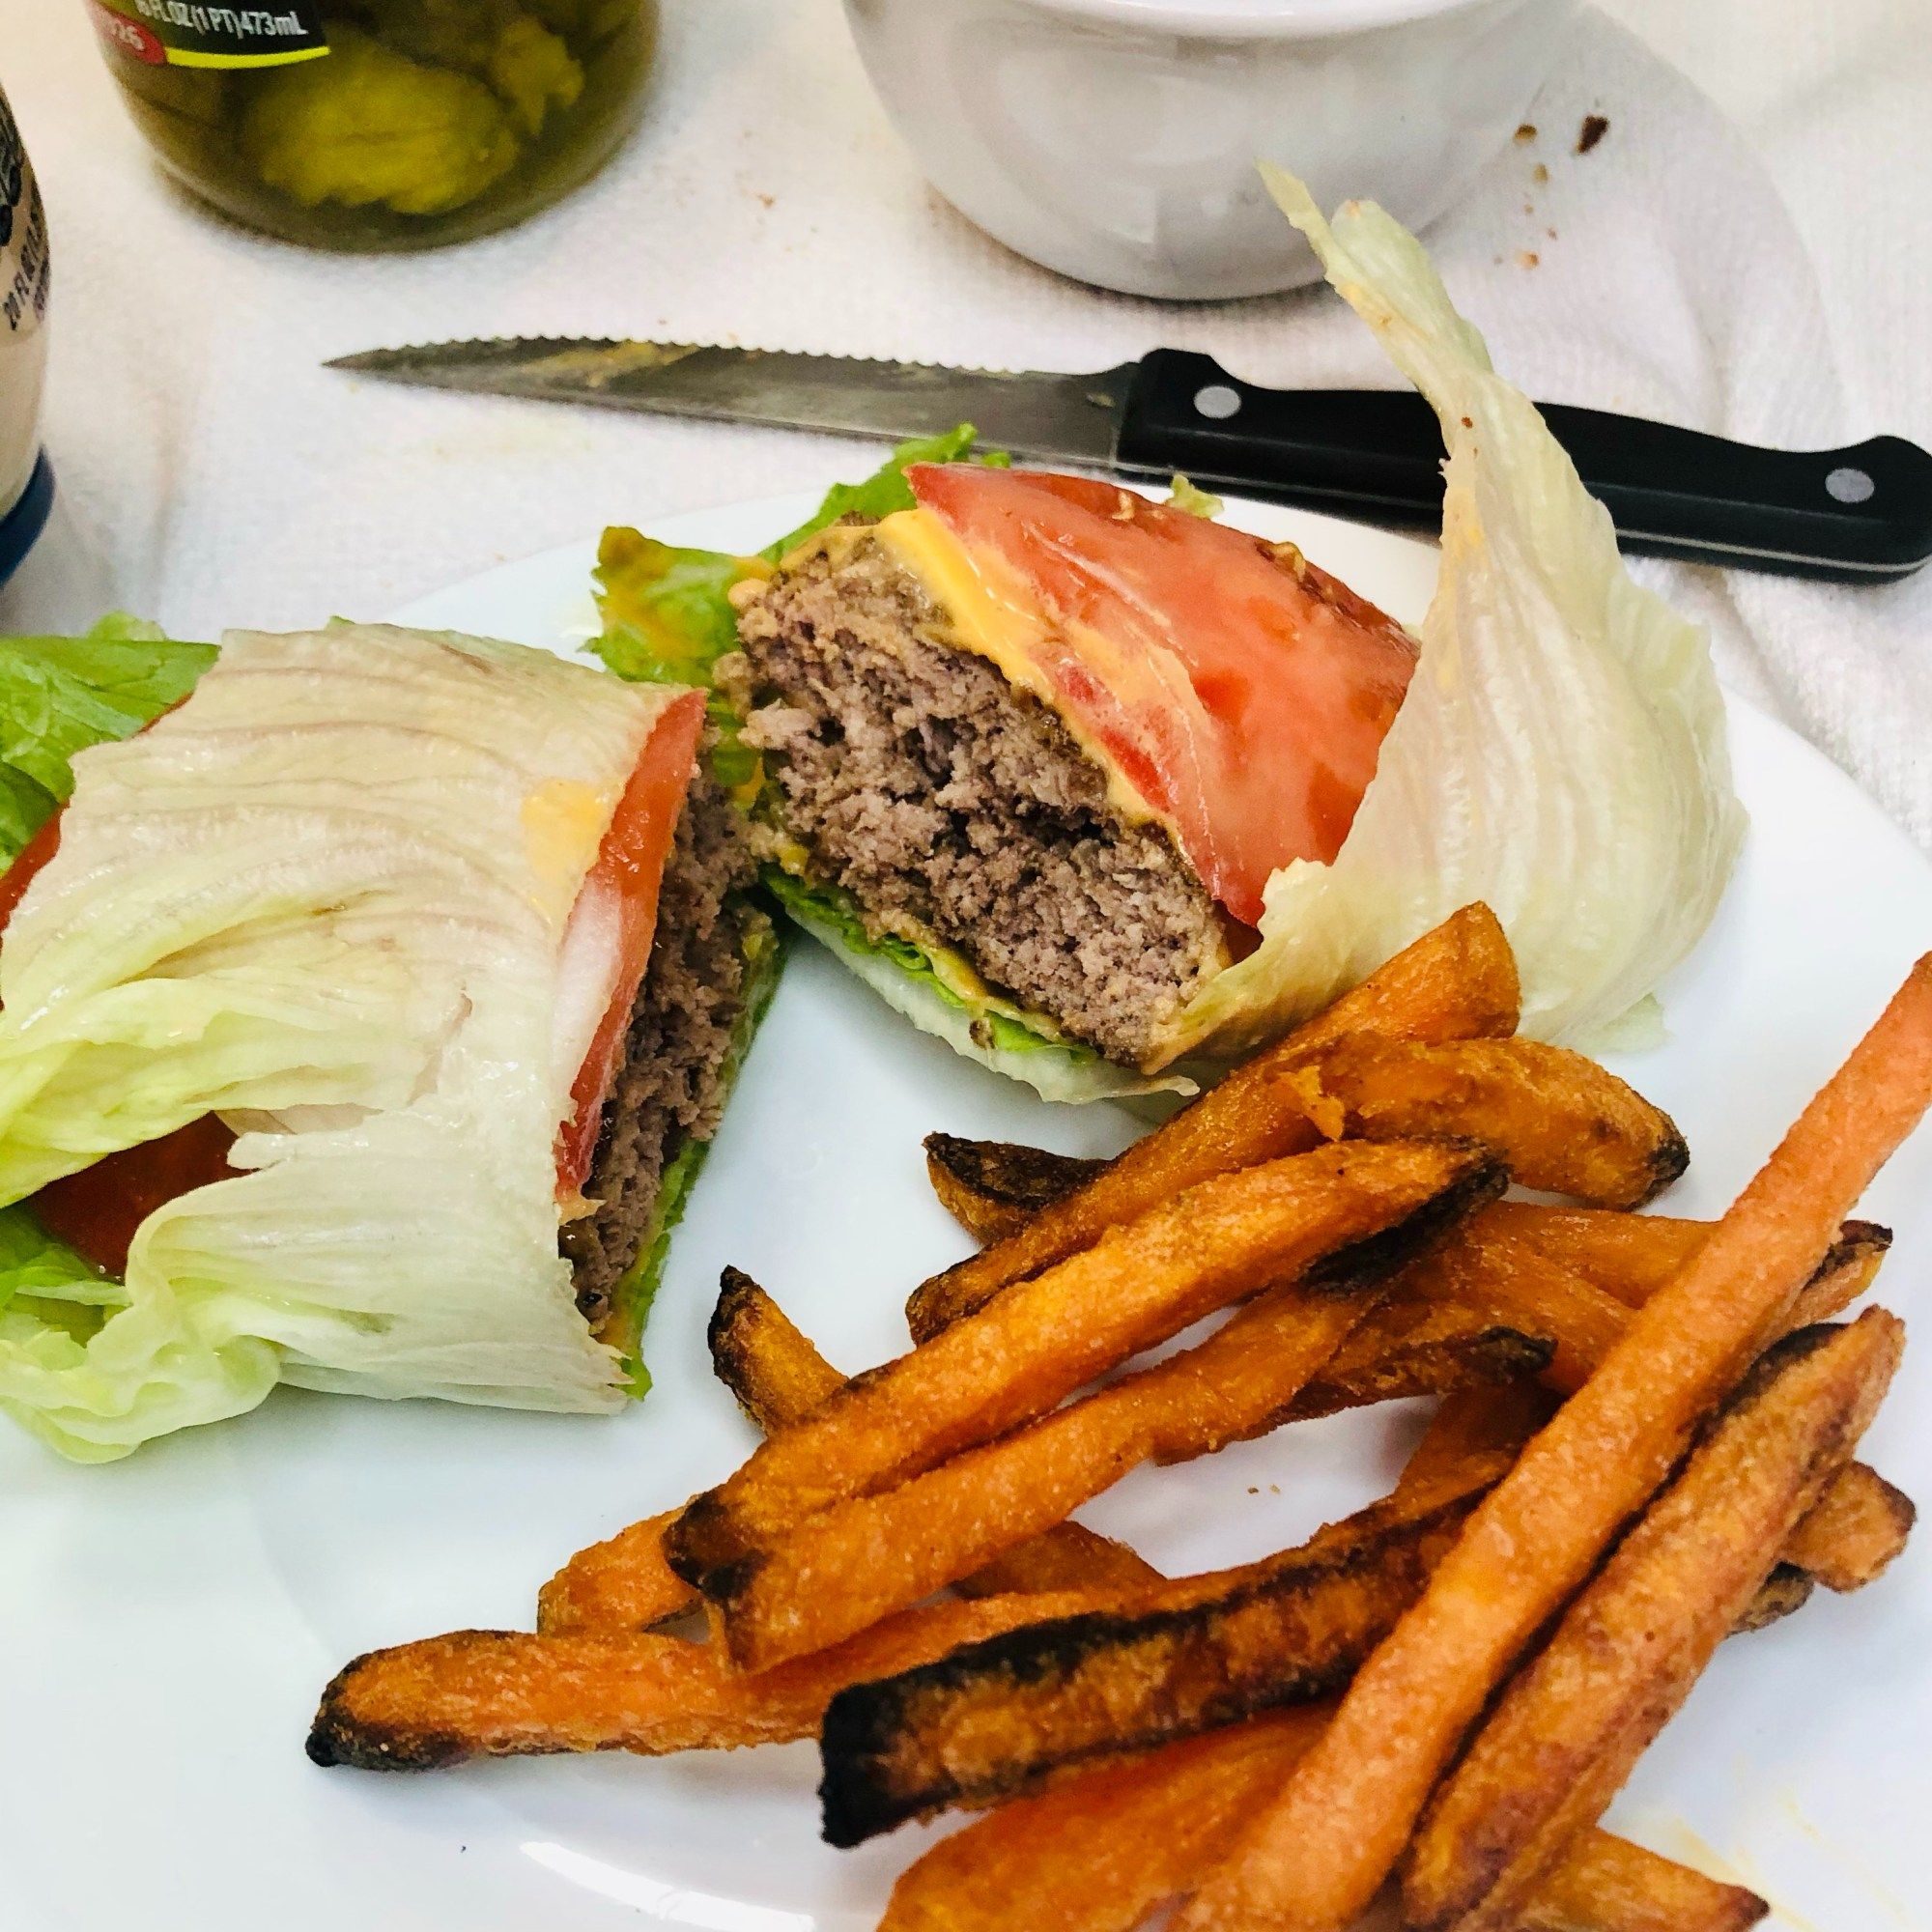 cheeseburger wrapped in lettuce